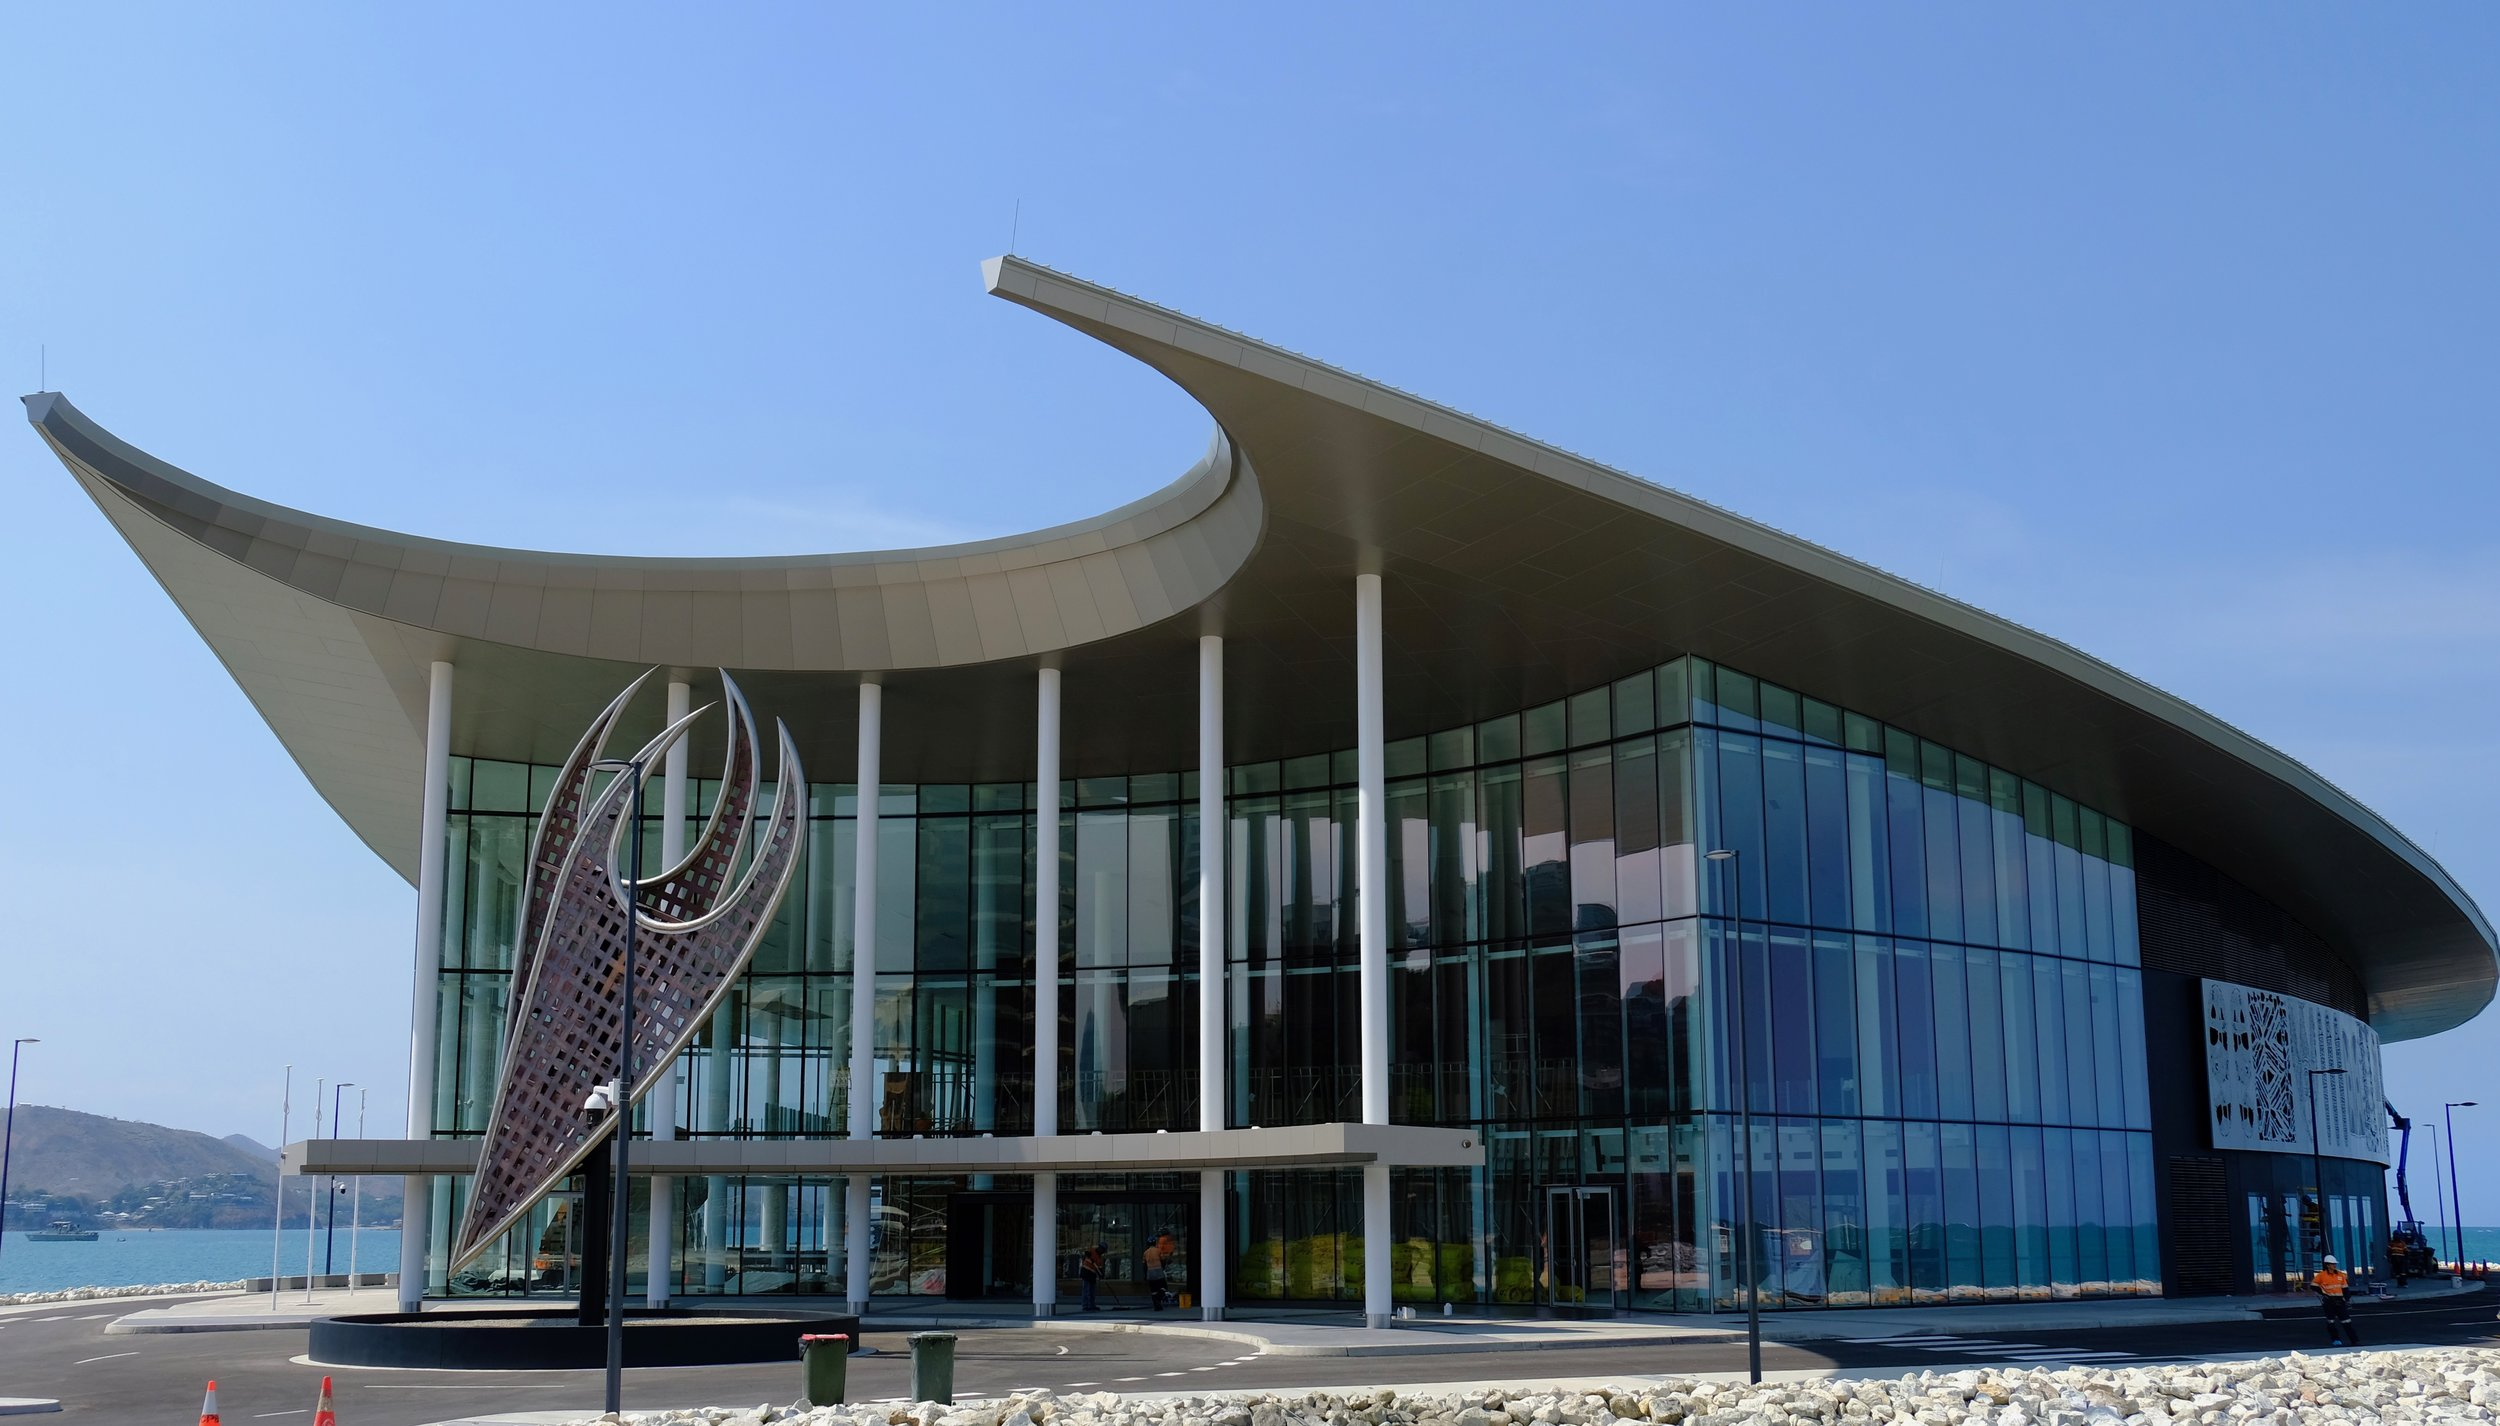 The APEC Haus in Port Moresby